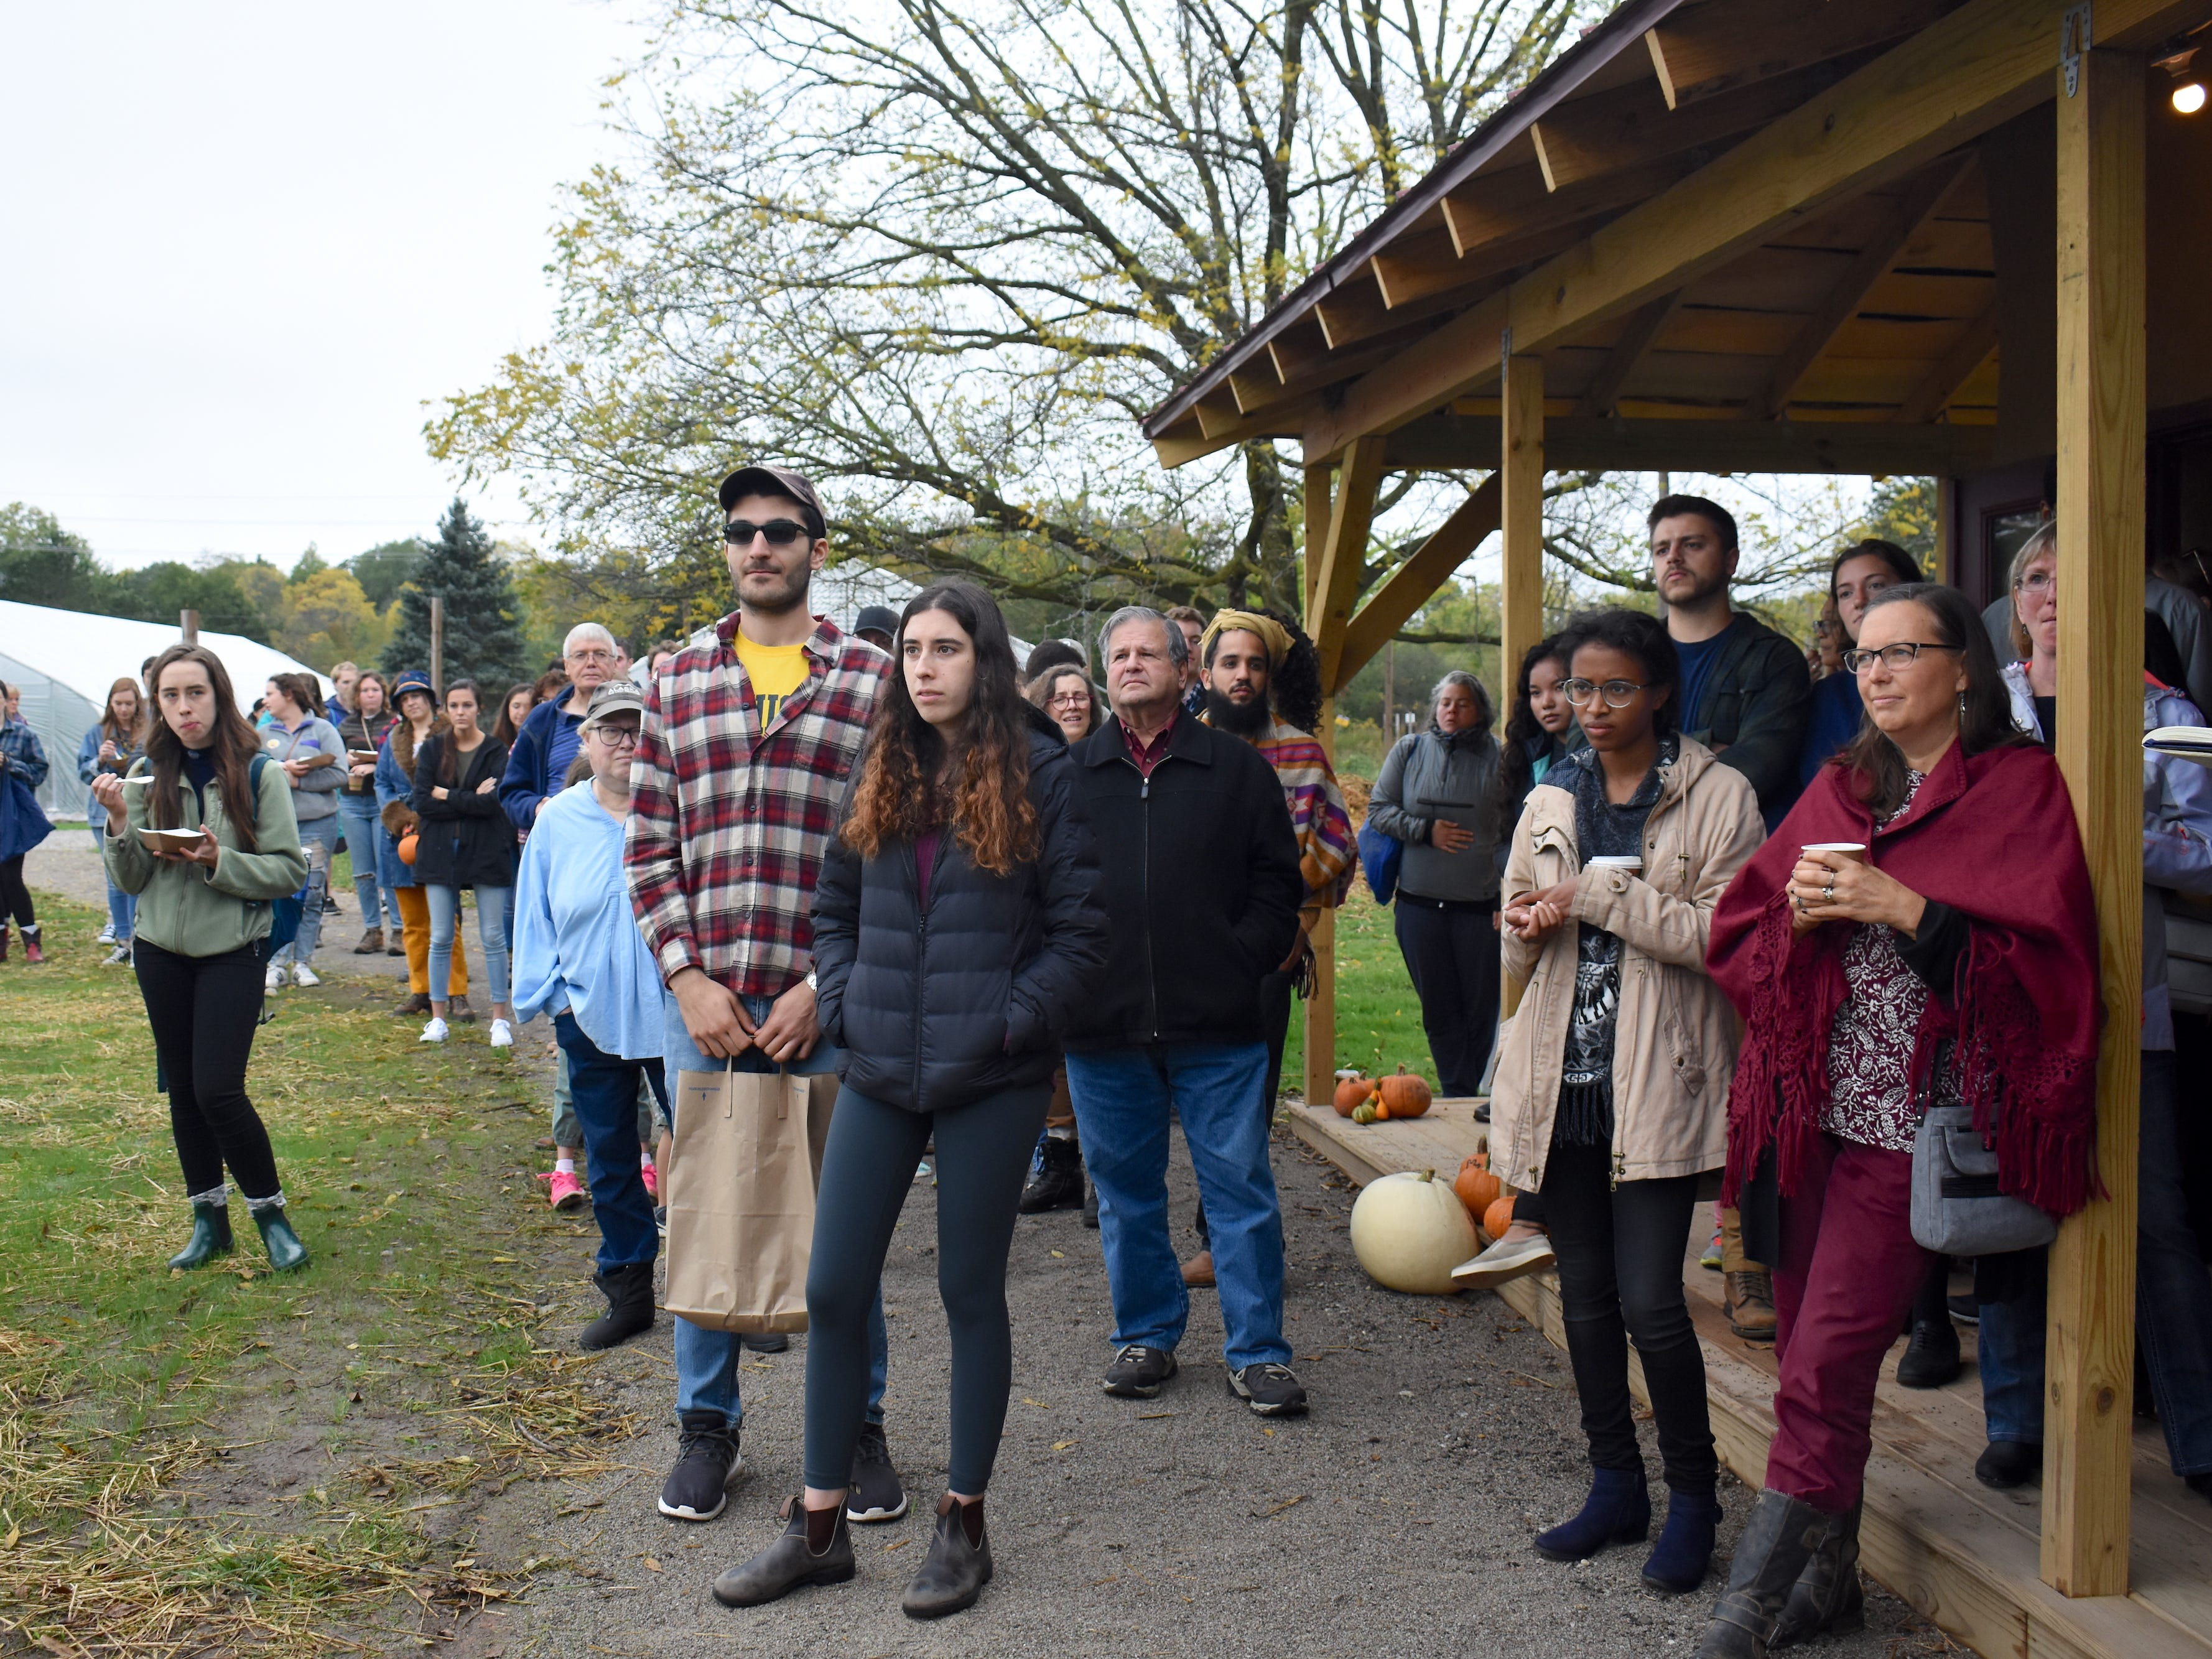 Students, university officials and guests gather outside the Straw Bale Building to celebrate its public unveiling at the Harvest Fest with a small ceremony.